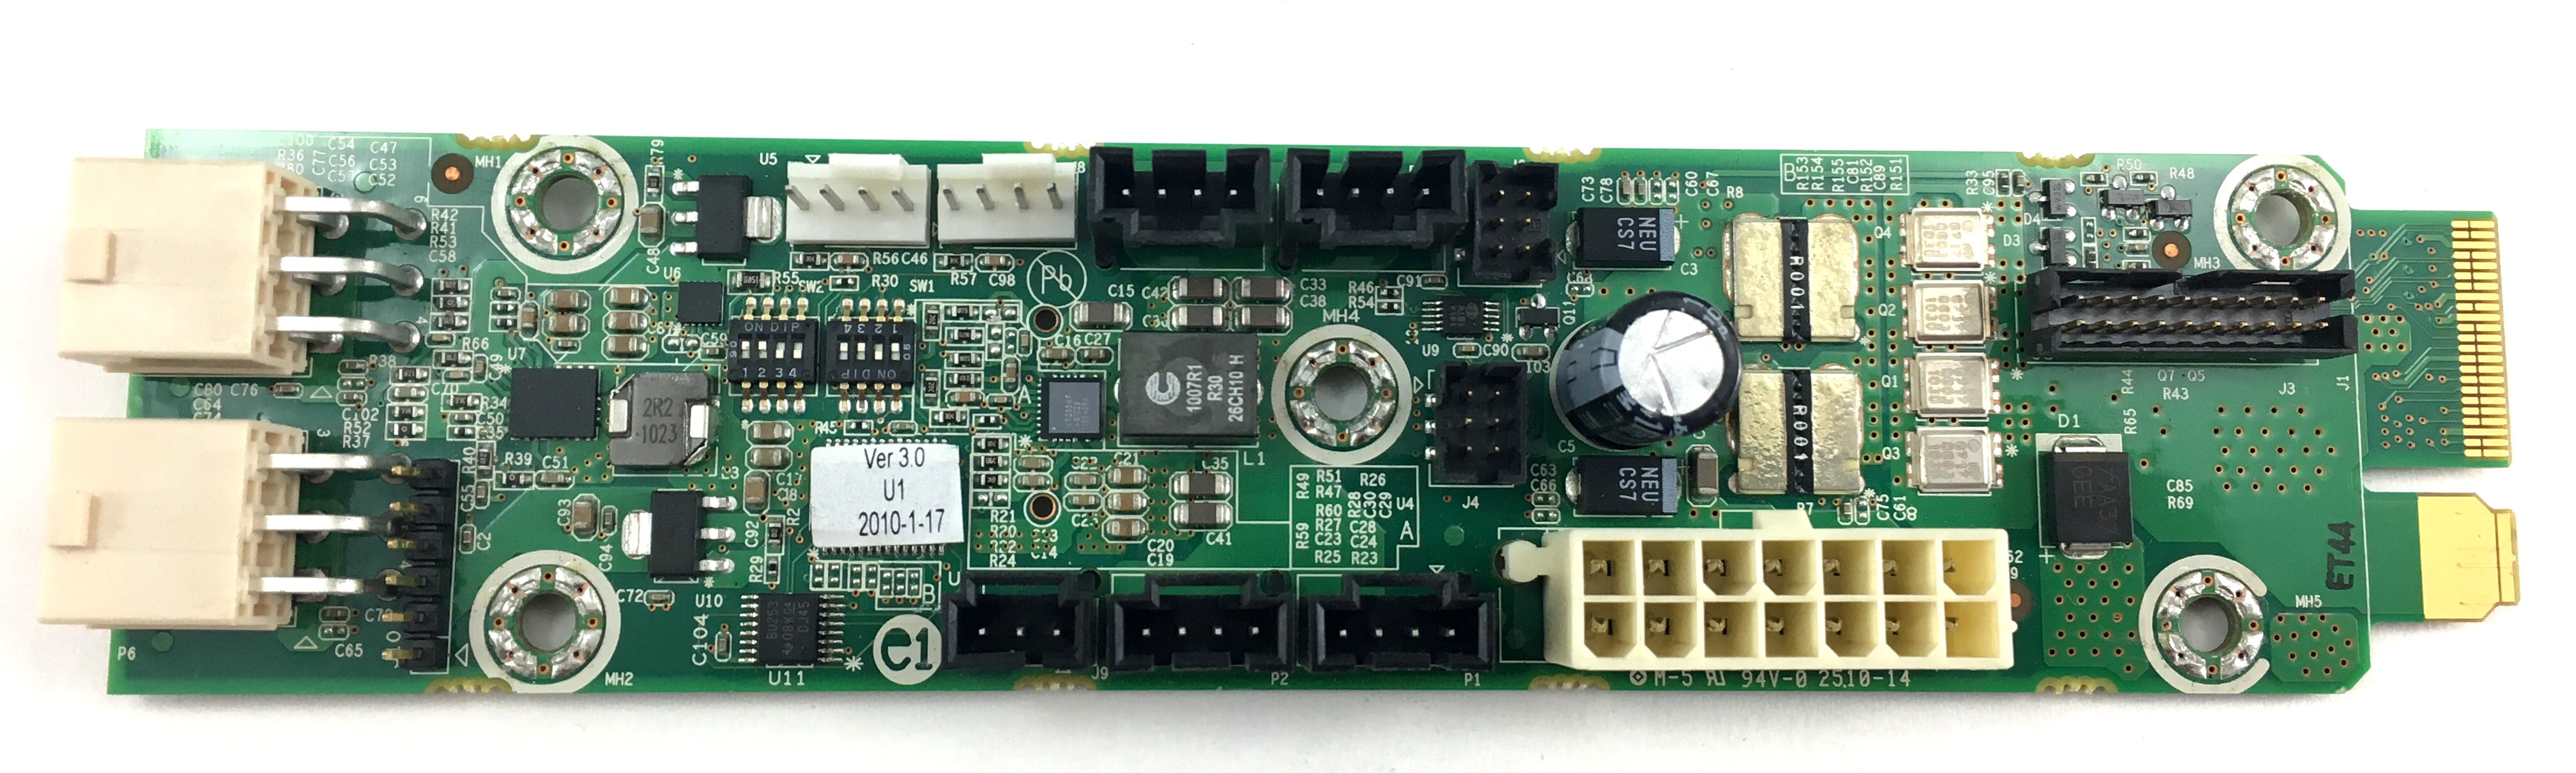 HP Power Disribution Board Sl390S G7 (598034-001)